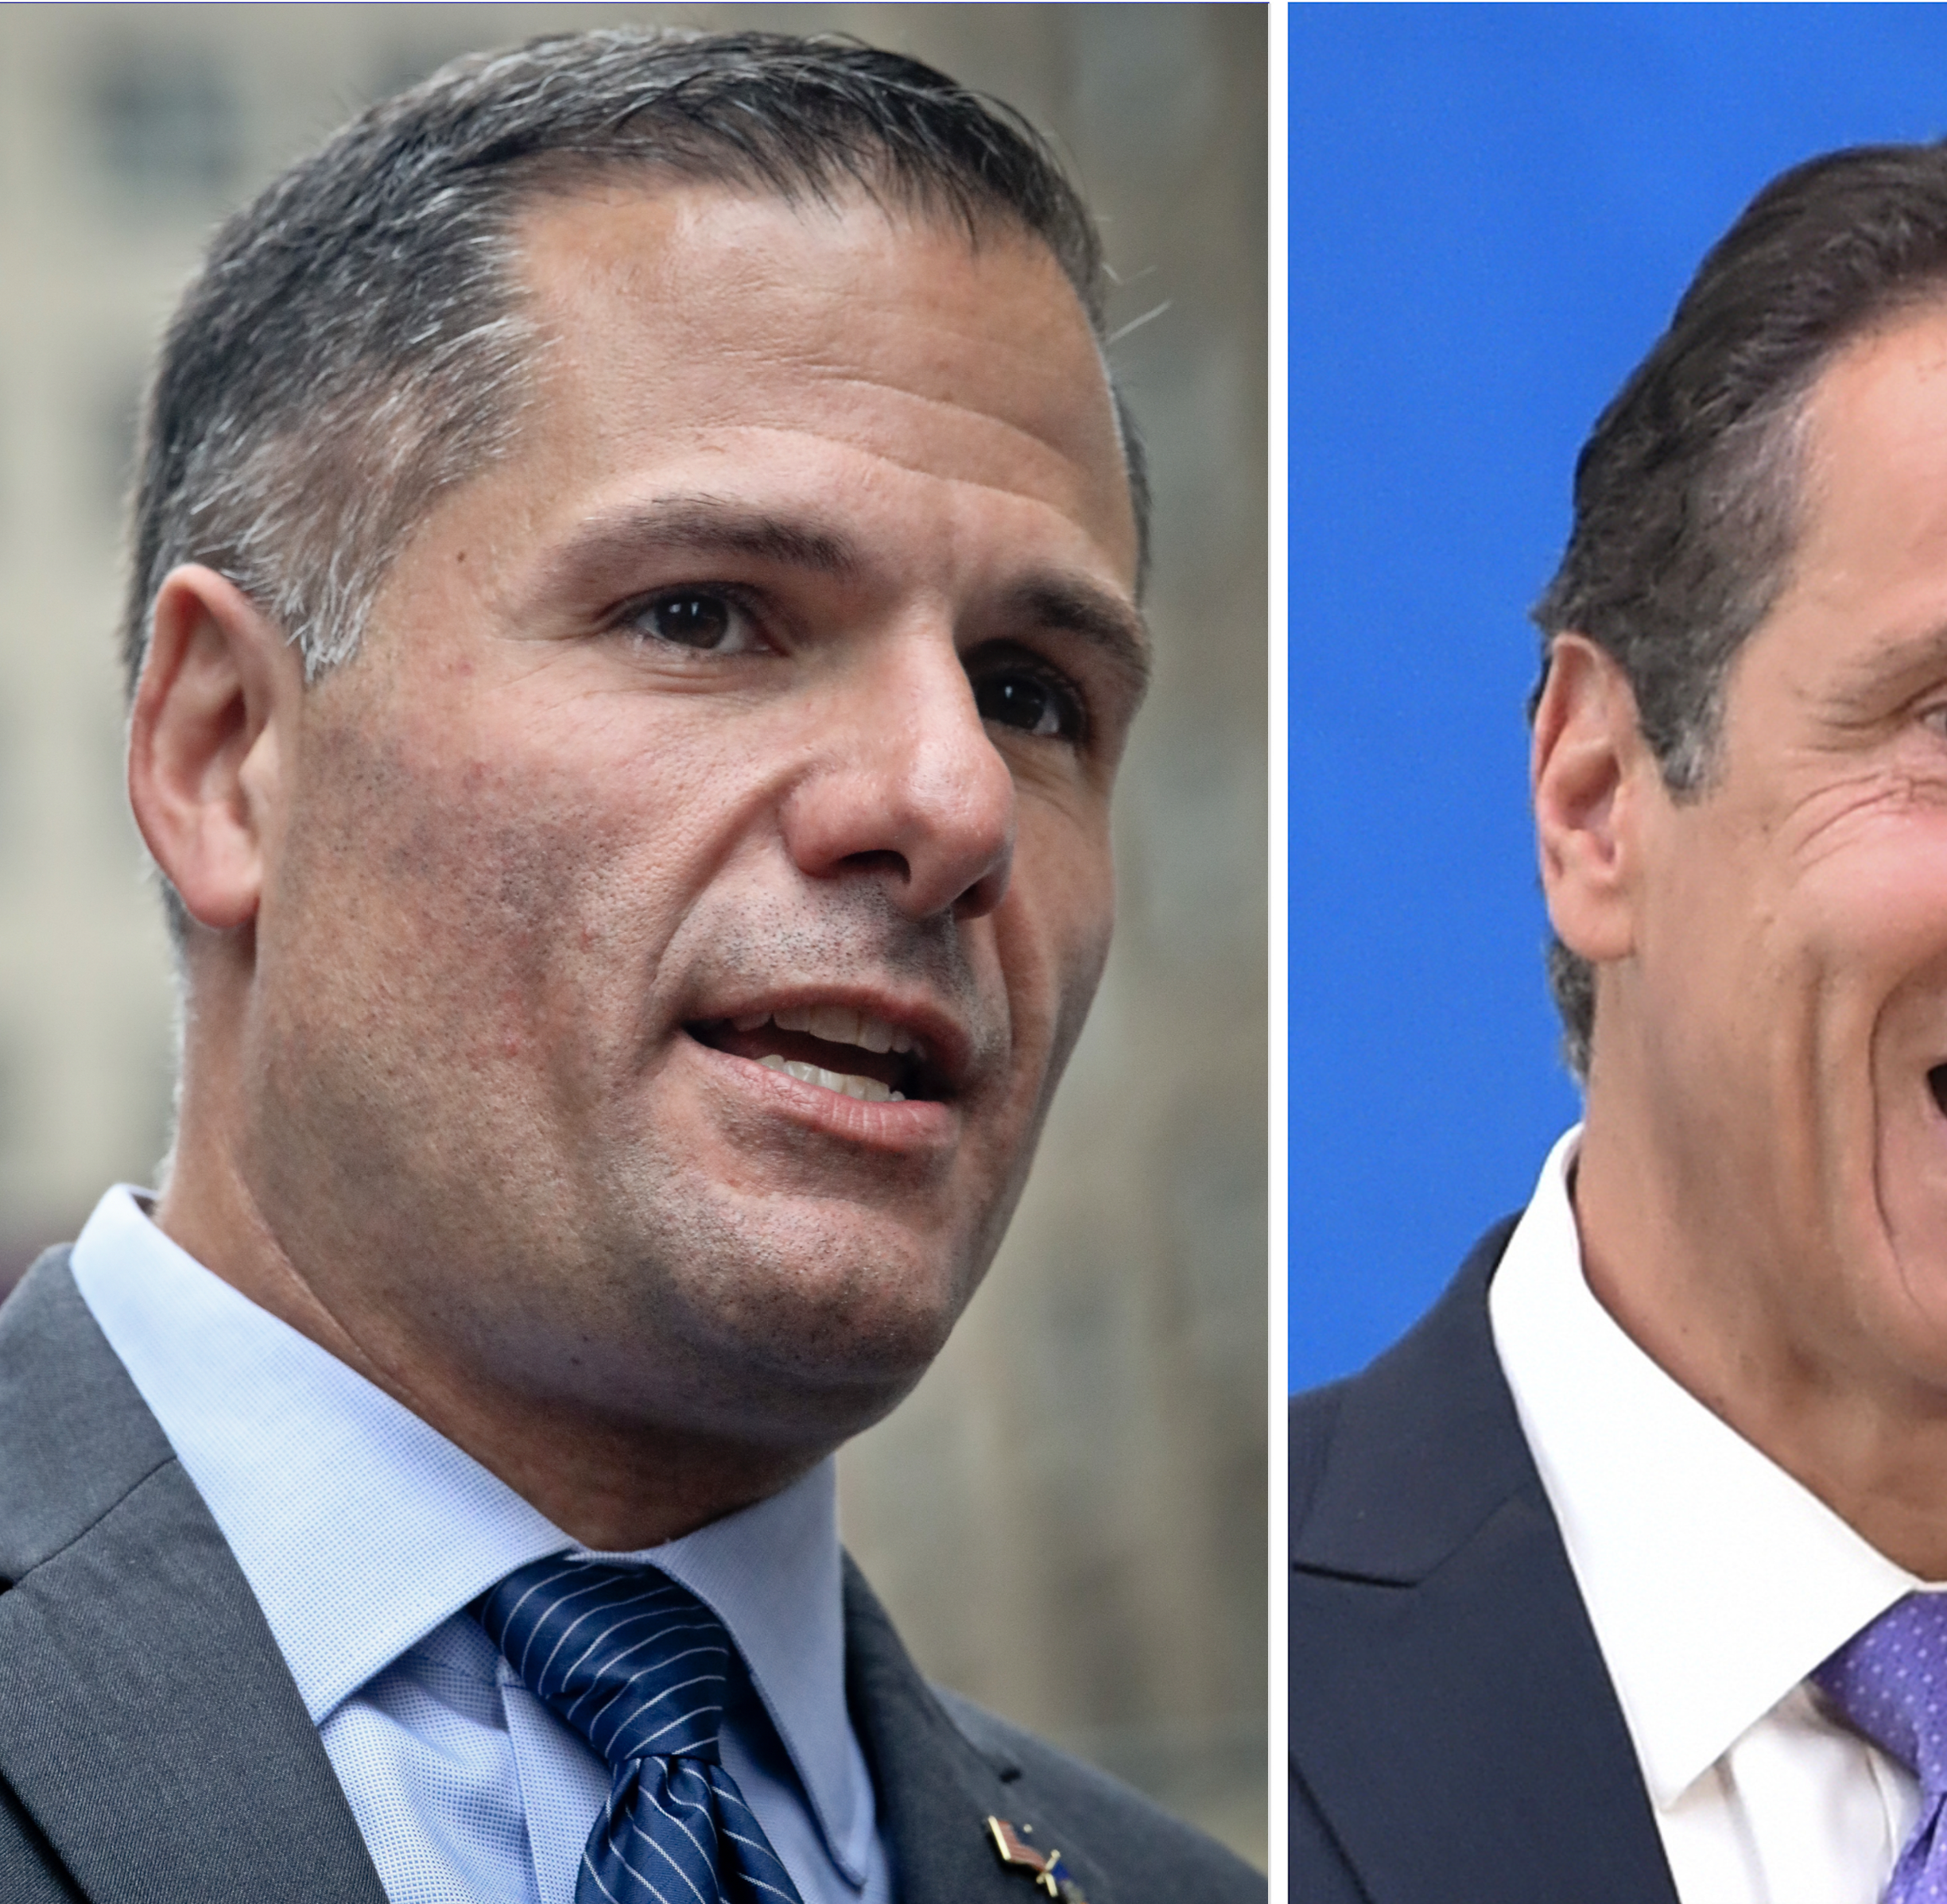 Cuomo accepts last-minute radio debate; Molinaro calls it a 'staged fraud'